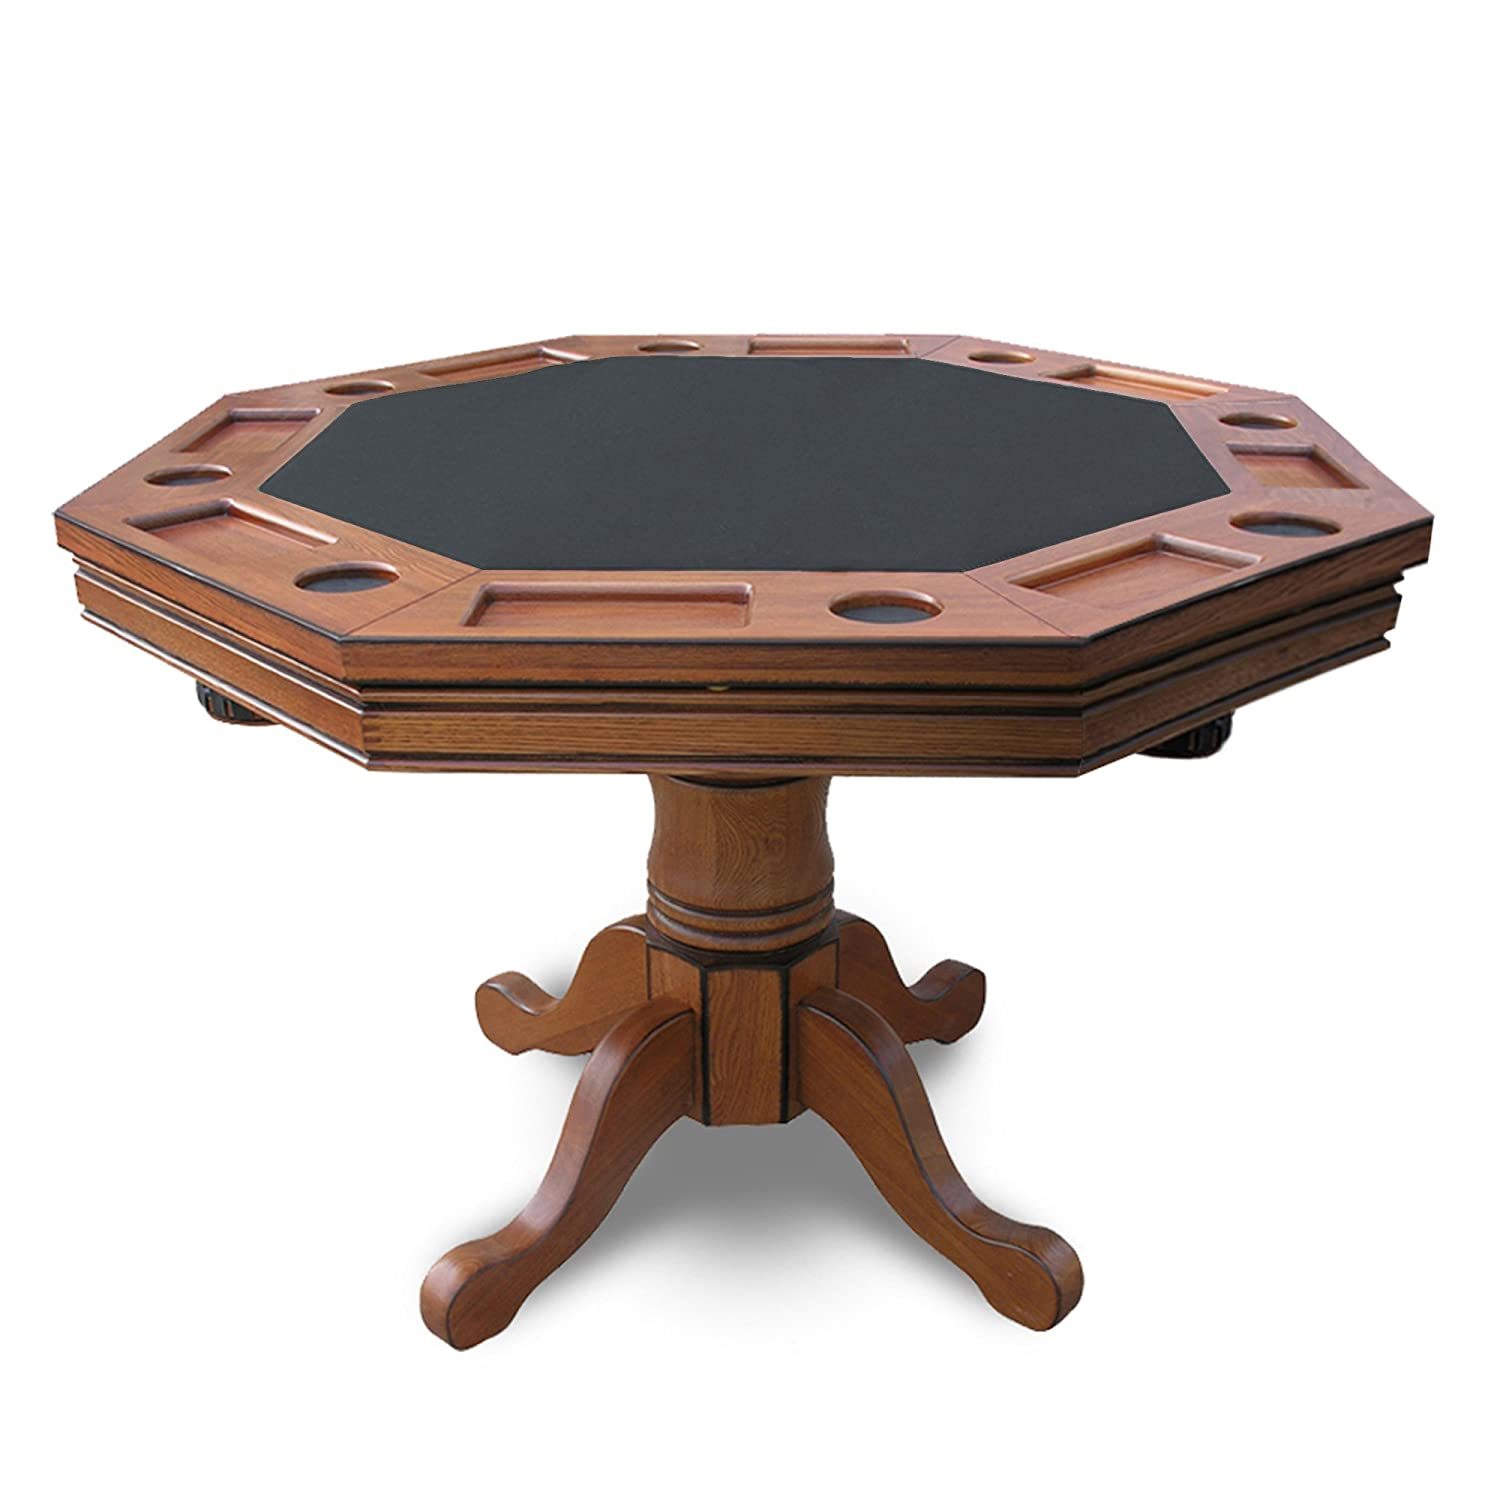 Poker table chairs - Amazon Com Hathaway Kingston 3 In 1 Poker Table With 4 Chairs Dark Oak Finish Rec Room Games And Equipment Sports Outdoors